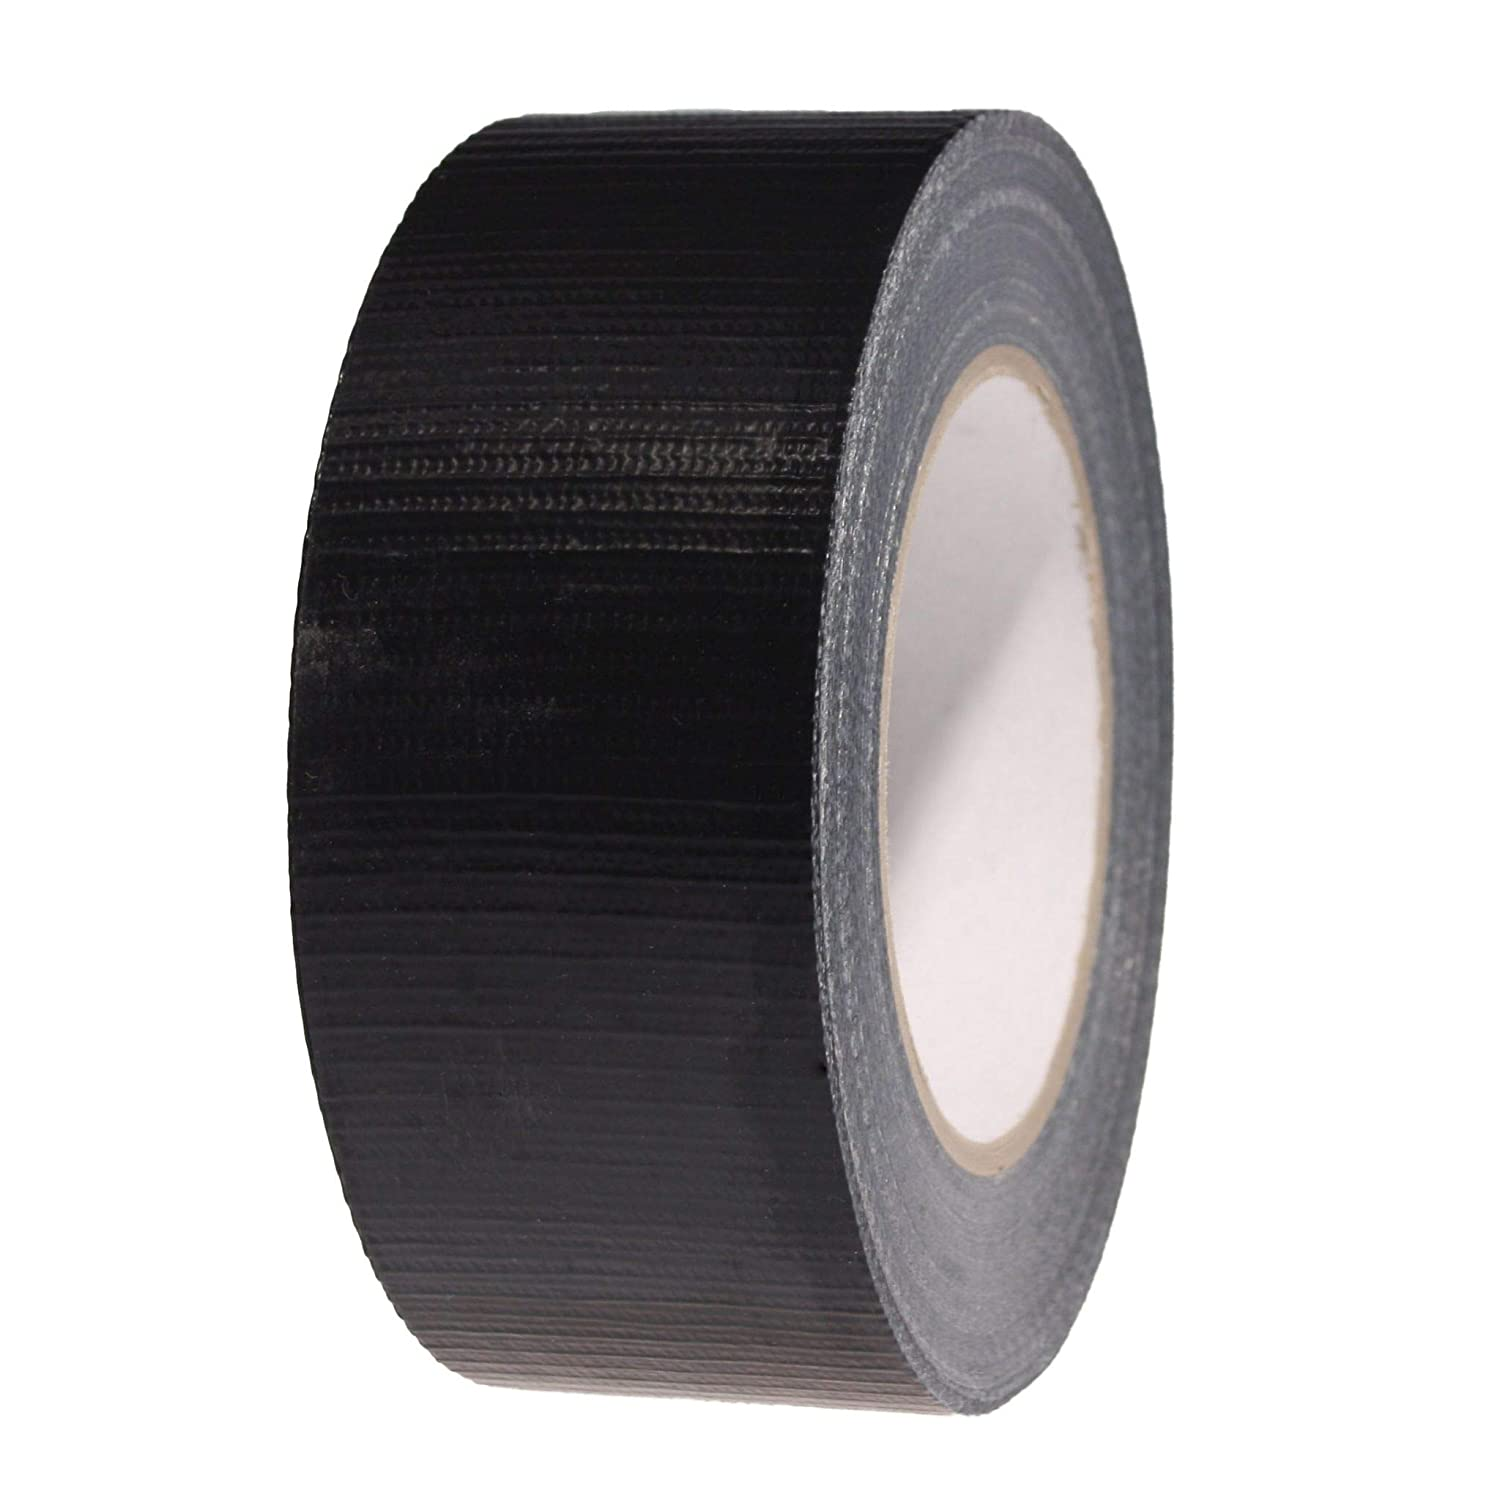 Duck Duct GAFFA Gaffer Waterproof Cloth Tape Silver/Black / White 48mm X 50M (12, Black) PACKAGING AND DISPOSABLES